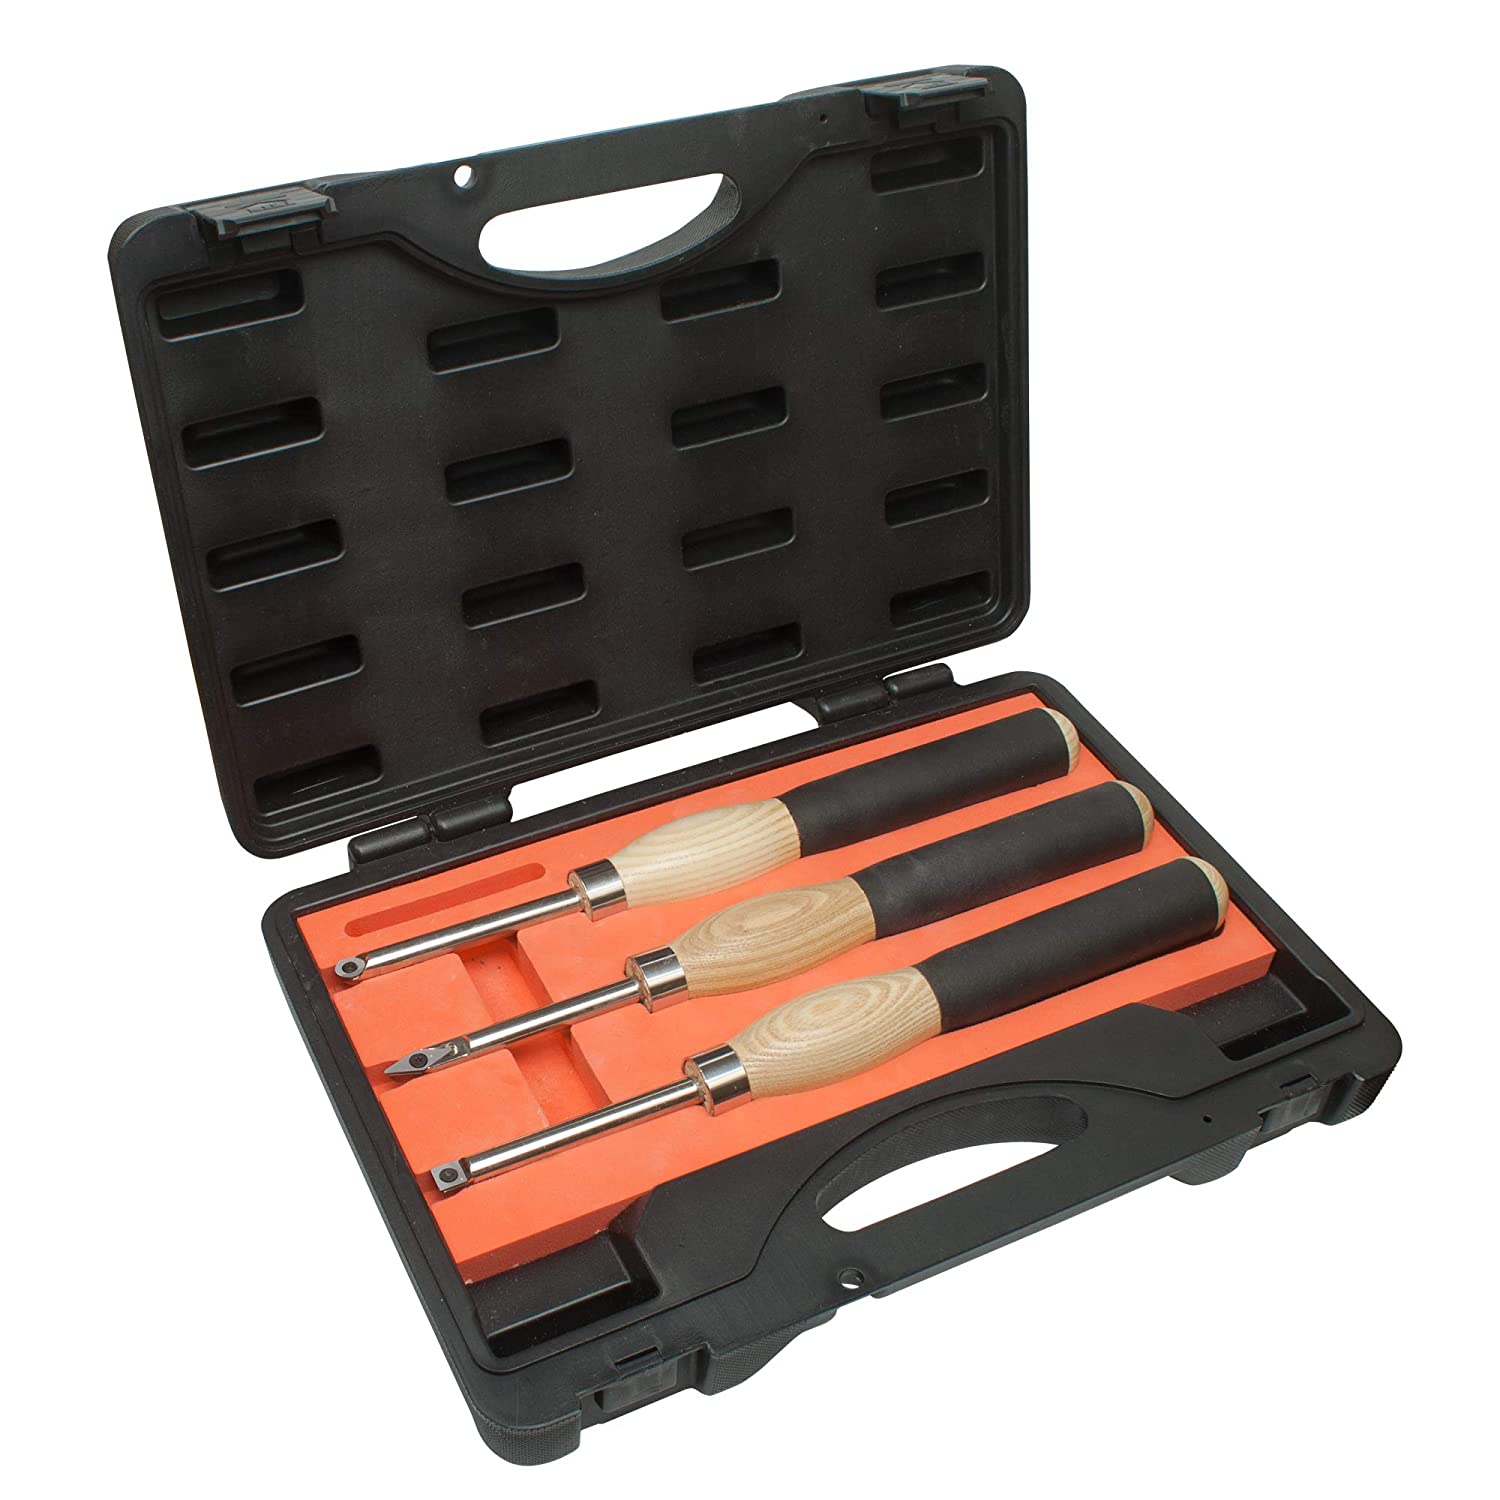 3 piece Carbide Mini Turning Tool Set With Foam Lined Case Perfect For Turning Pens Pencils Tops Goblets Acorns Bottle Stoppers or any Small to Mid-Size Turning Project (3pc Carbide Tool Set)